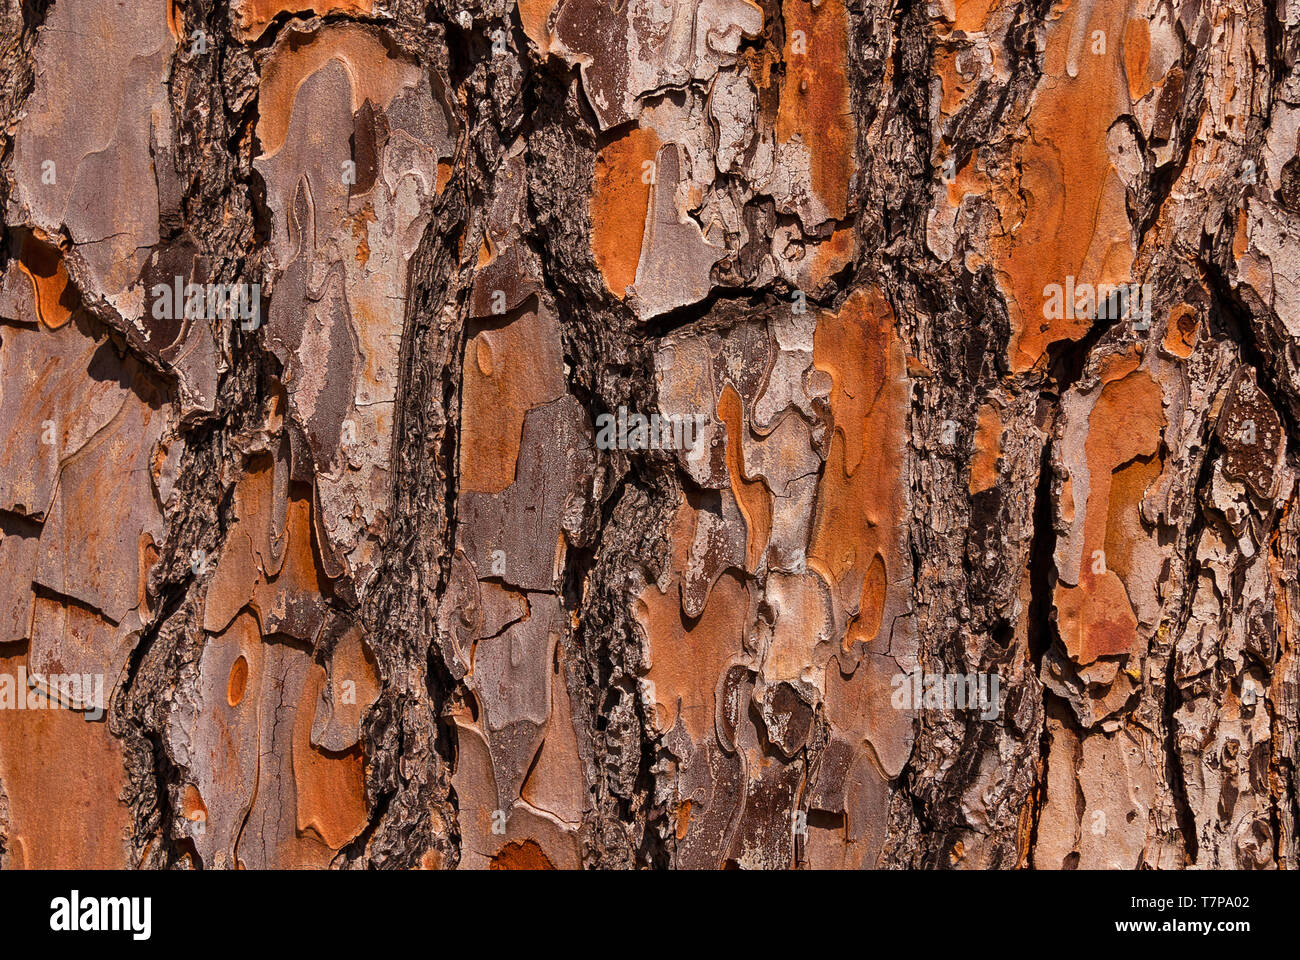 Detail of Maritime Pine bark with rough surface as background - Stock Image